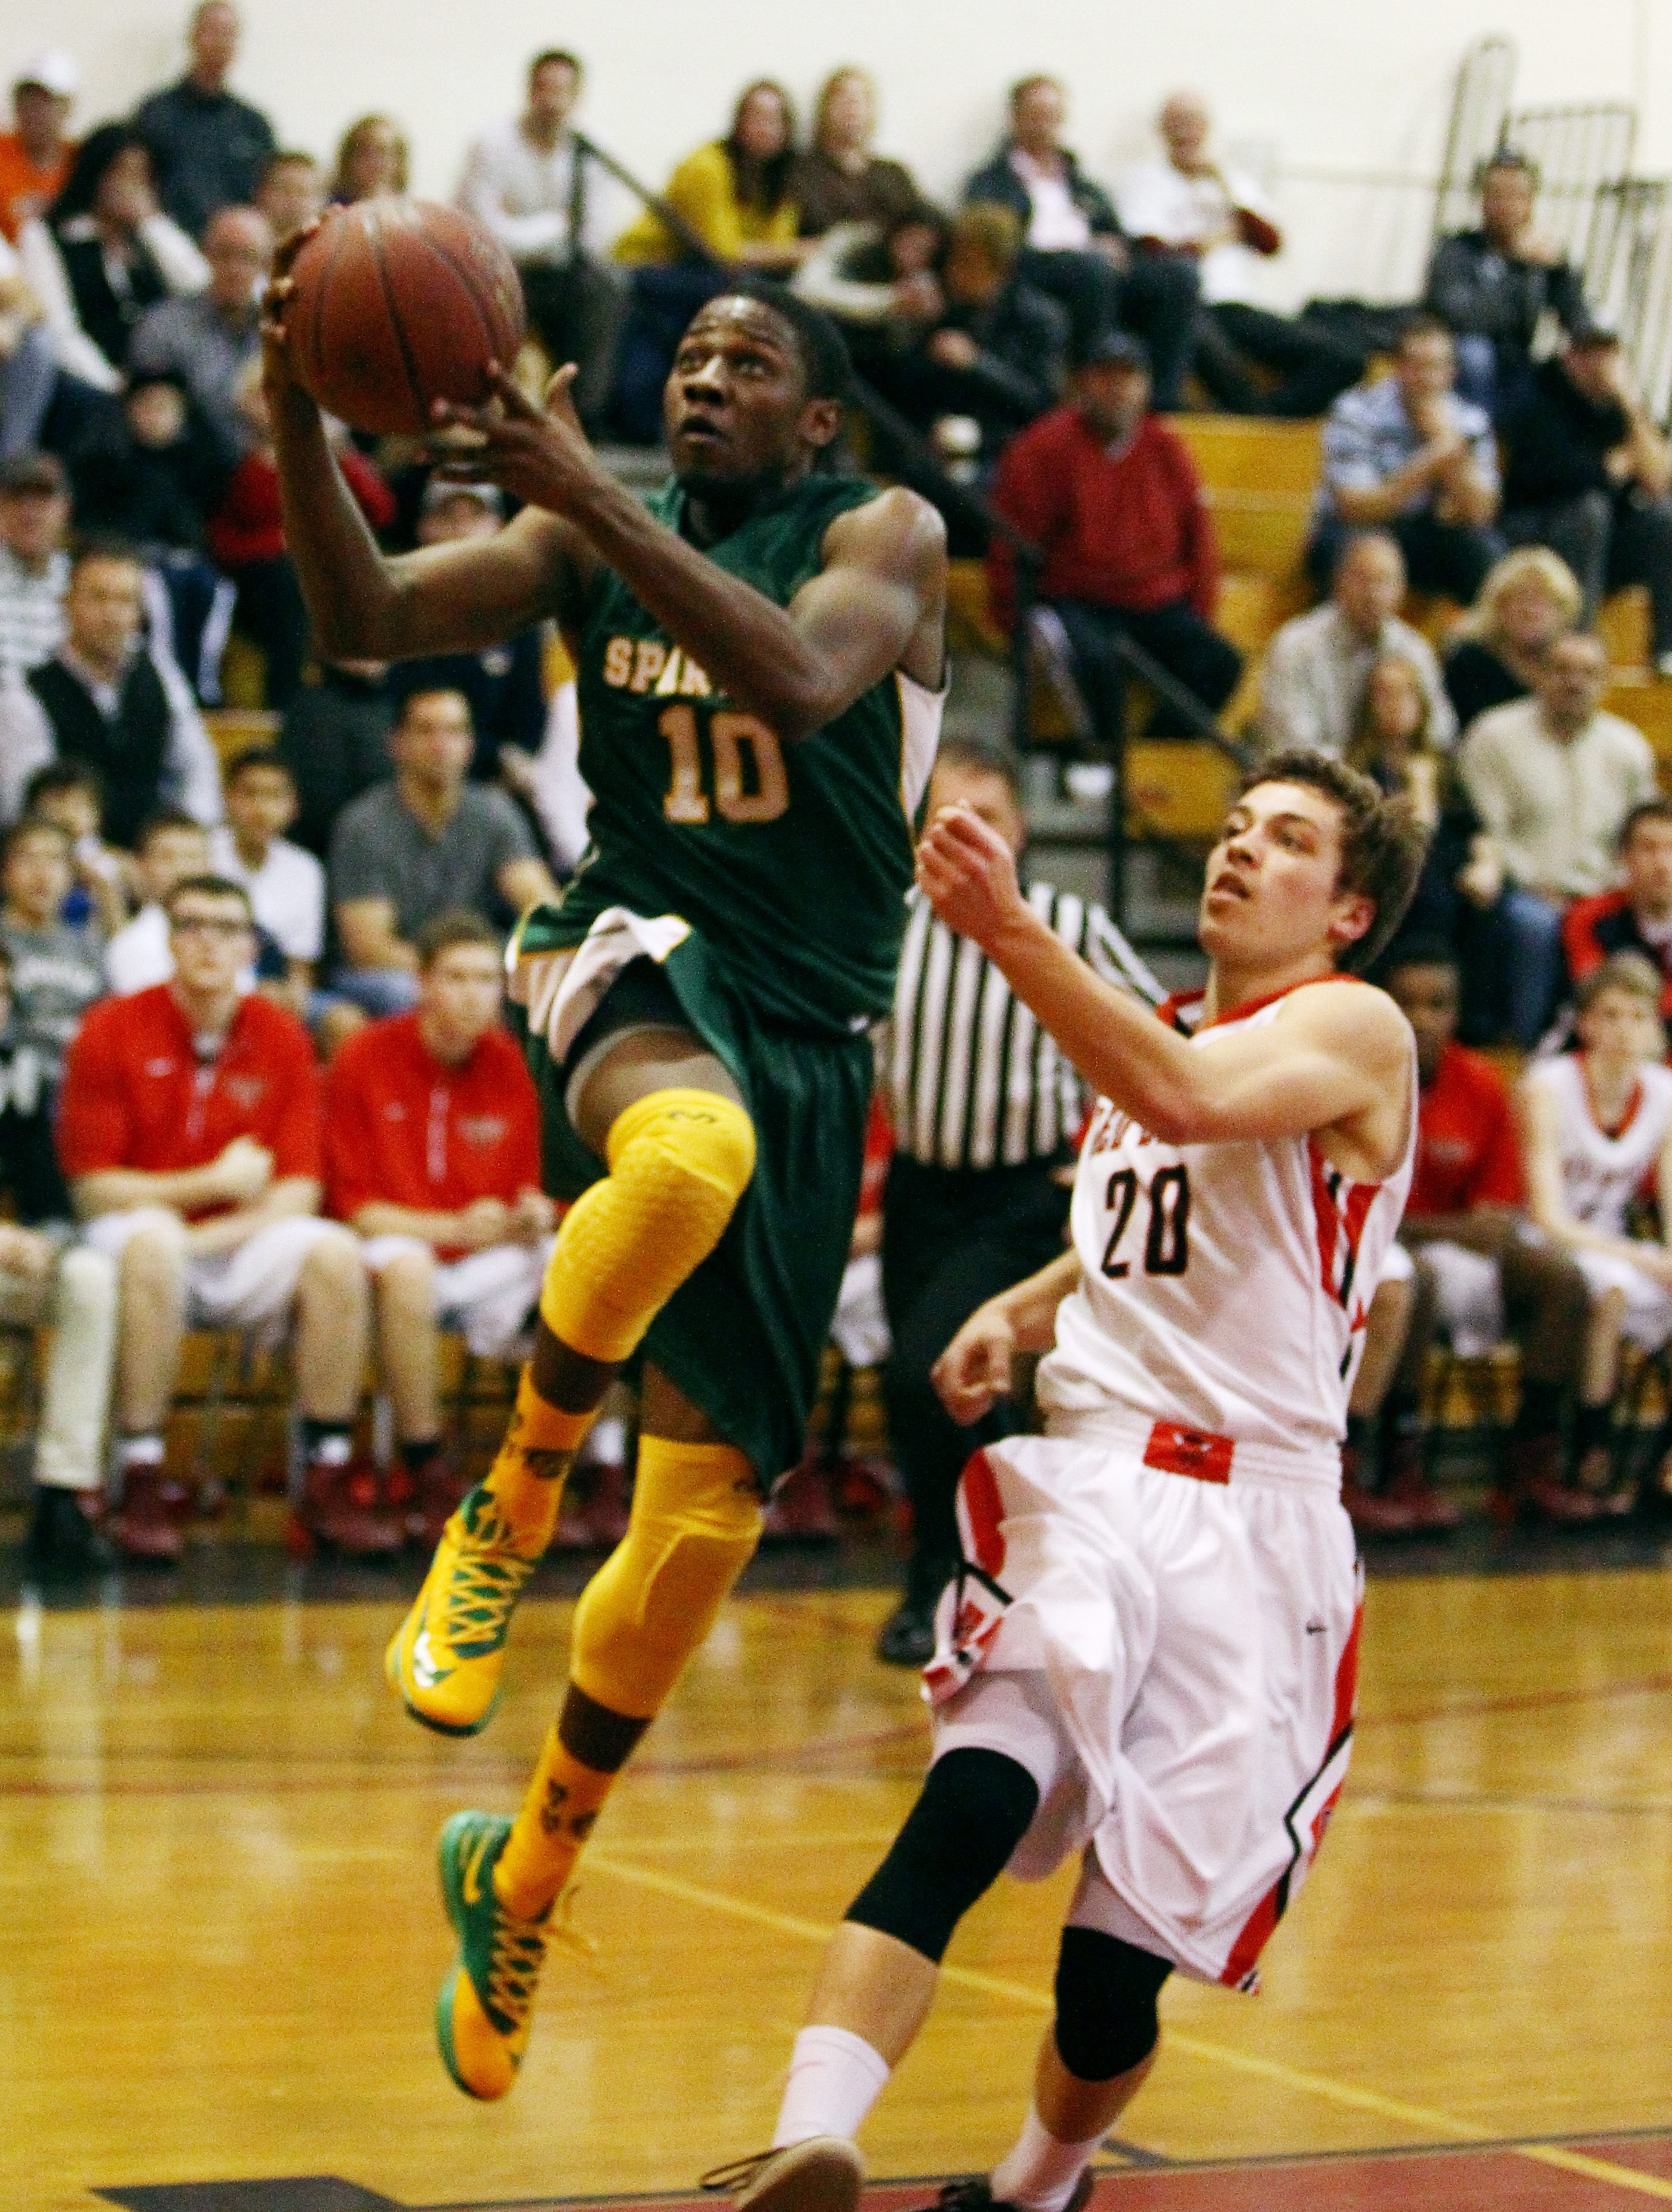 Williamsville North's Sterling Taplin currently ranks 23rd on the all-time WNY points list.